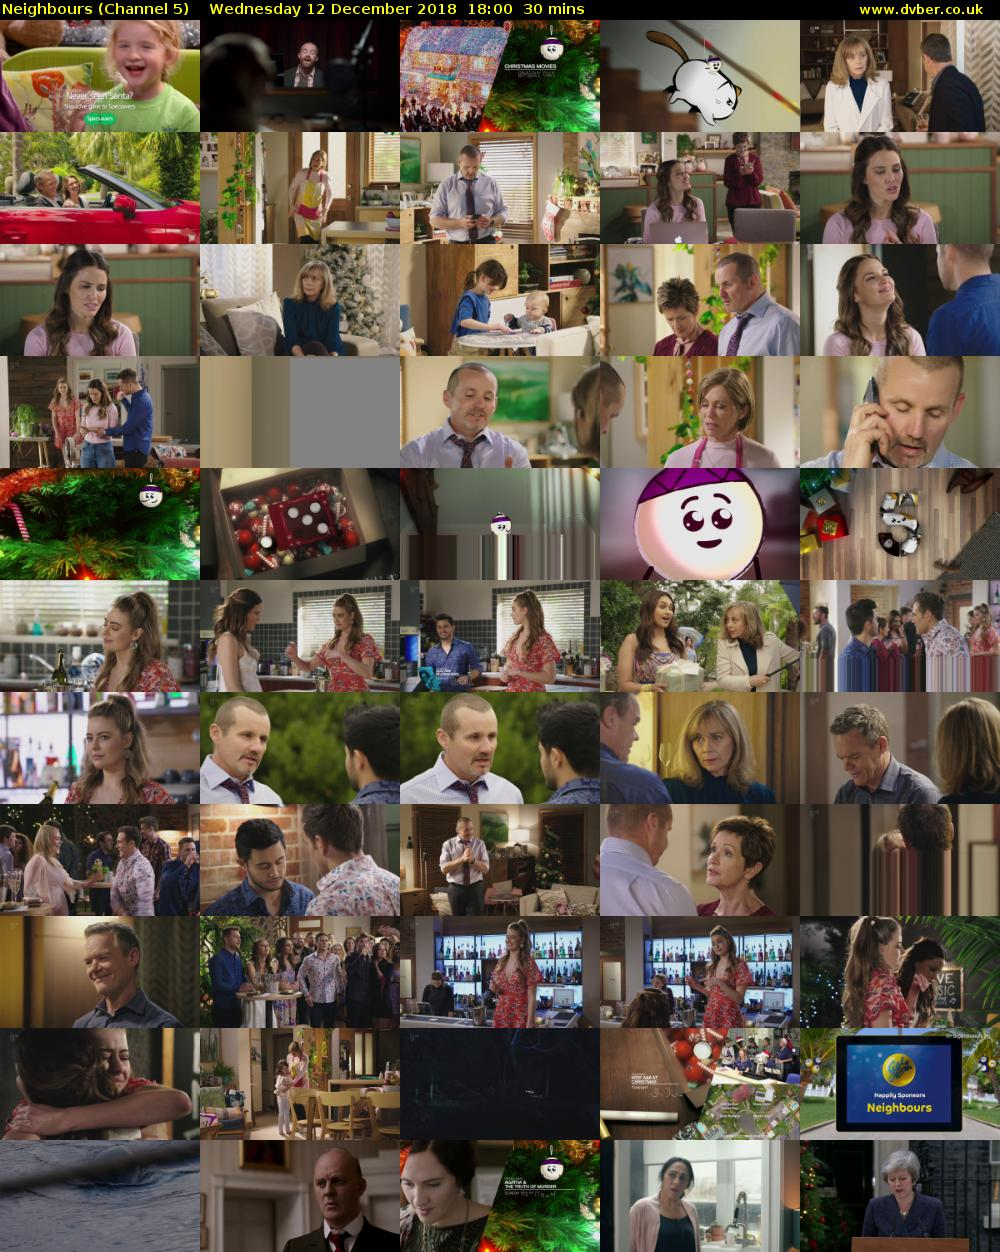 Neighbours (Channel 5) Wednesday 12 December 2018 18:00 - 18:30